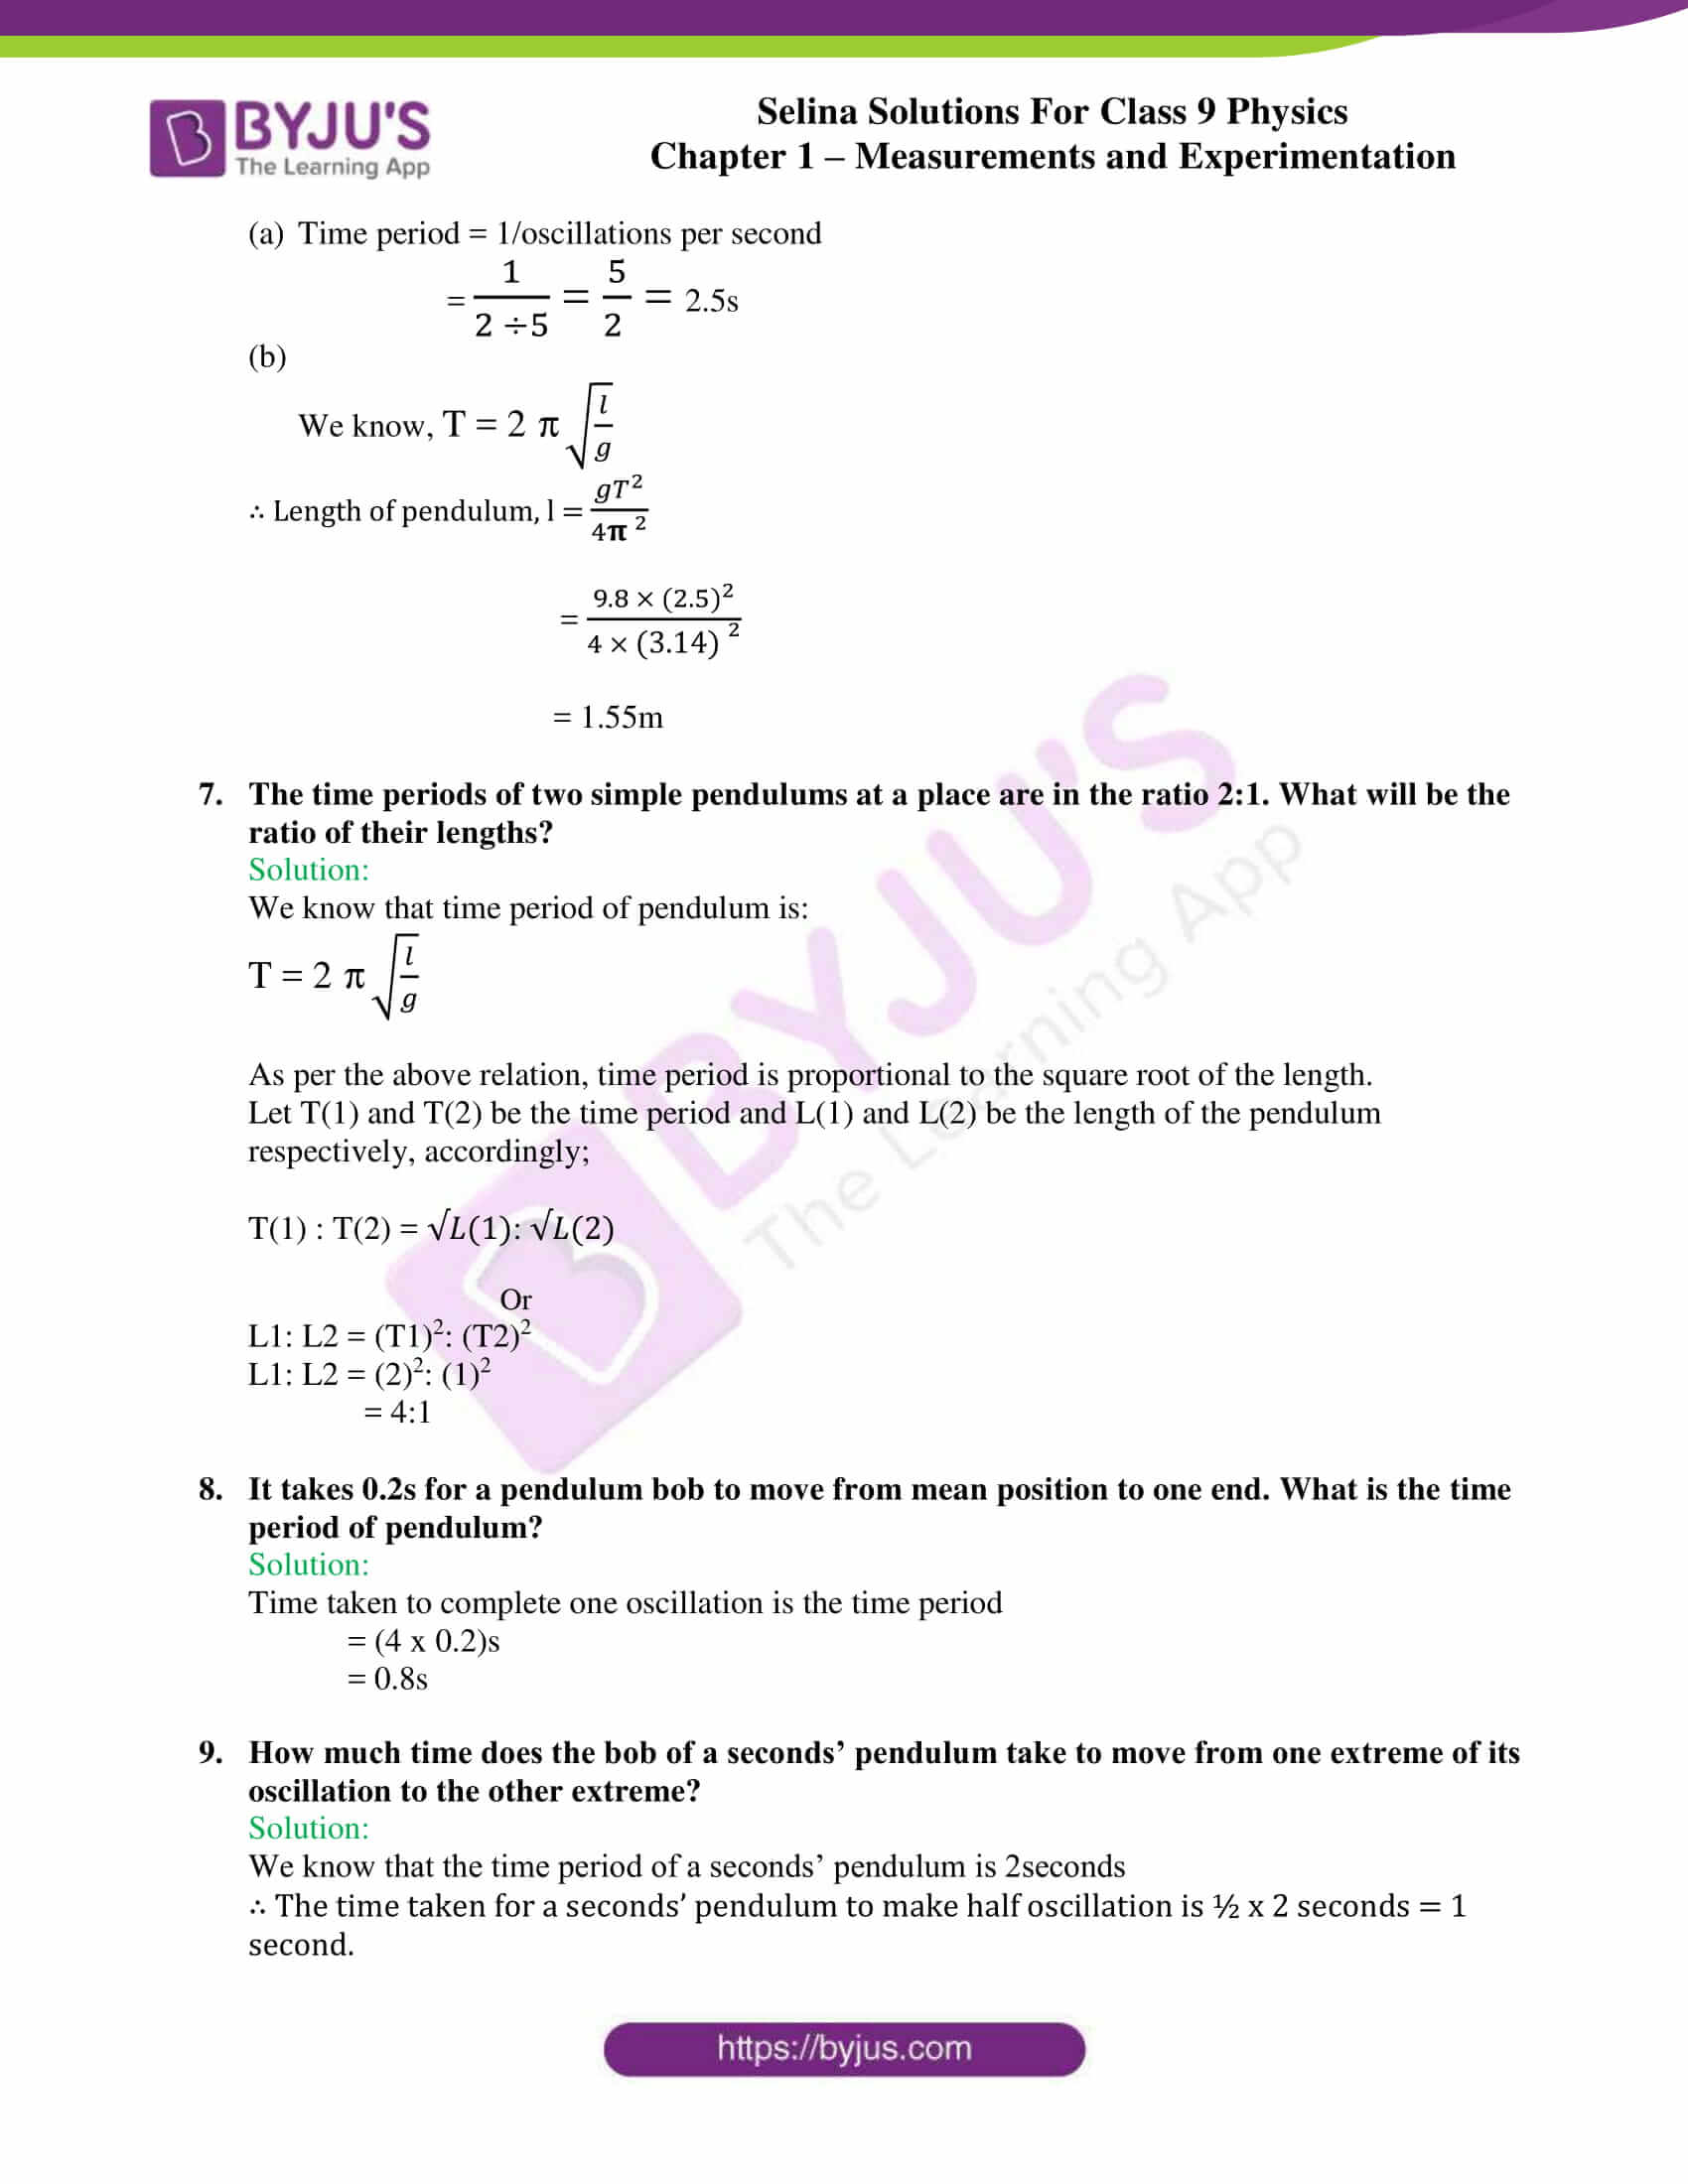 selina solutions class 9 physics chapter 1 Measurements and Experimentation part 31